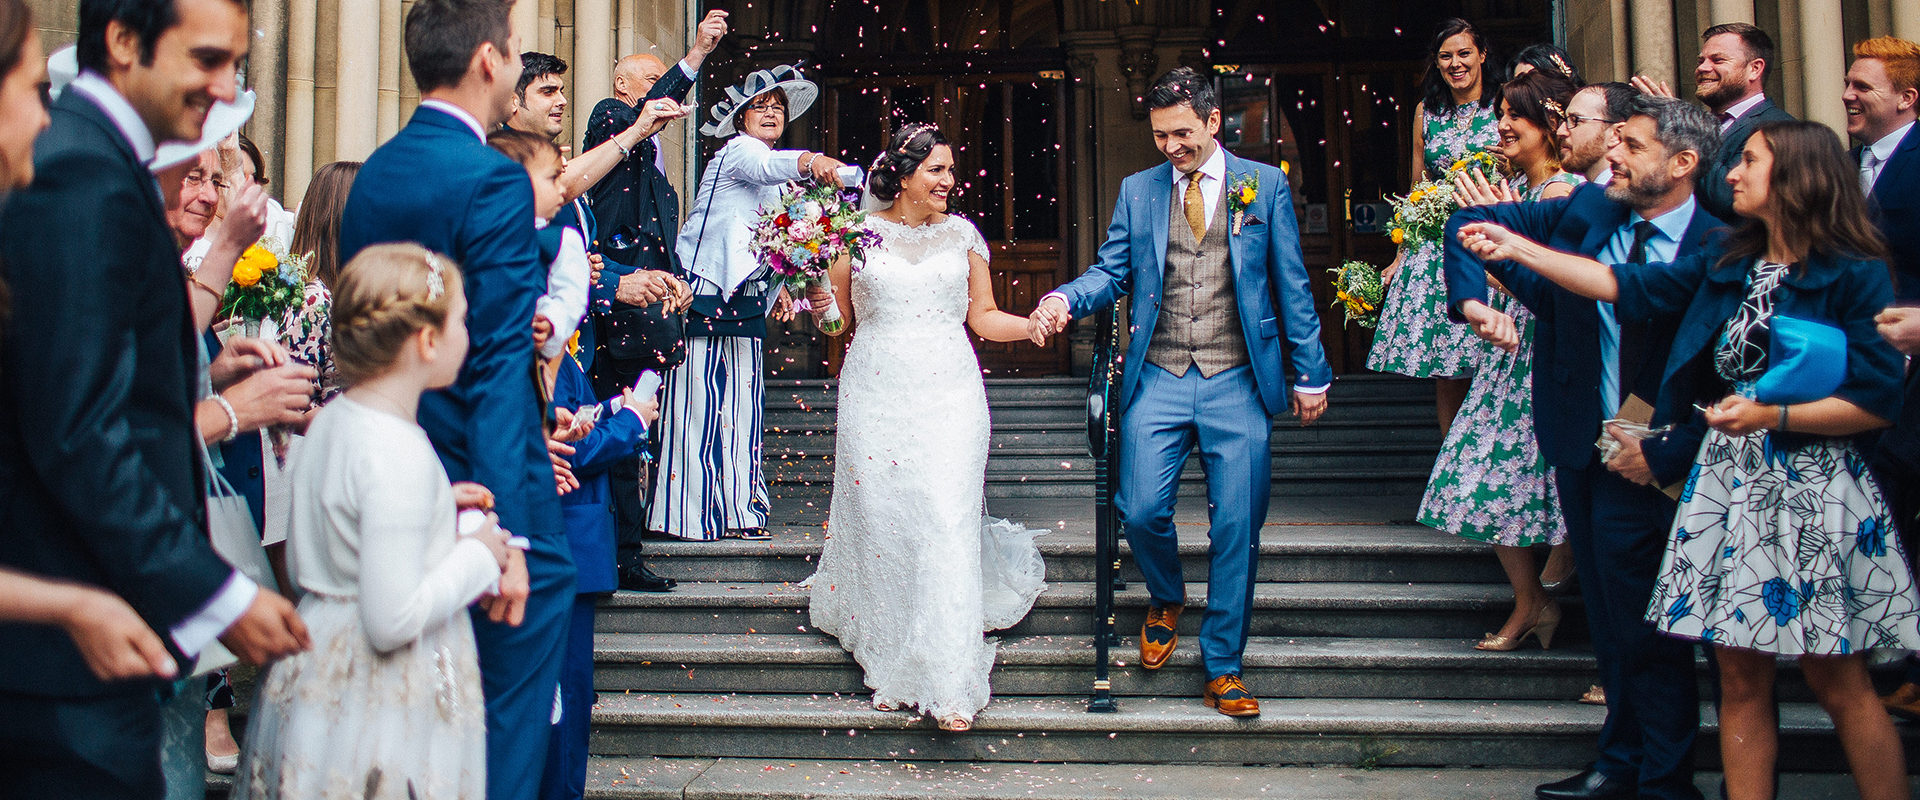 Relaxed Wedding at Manchester Town Hall